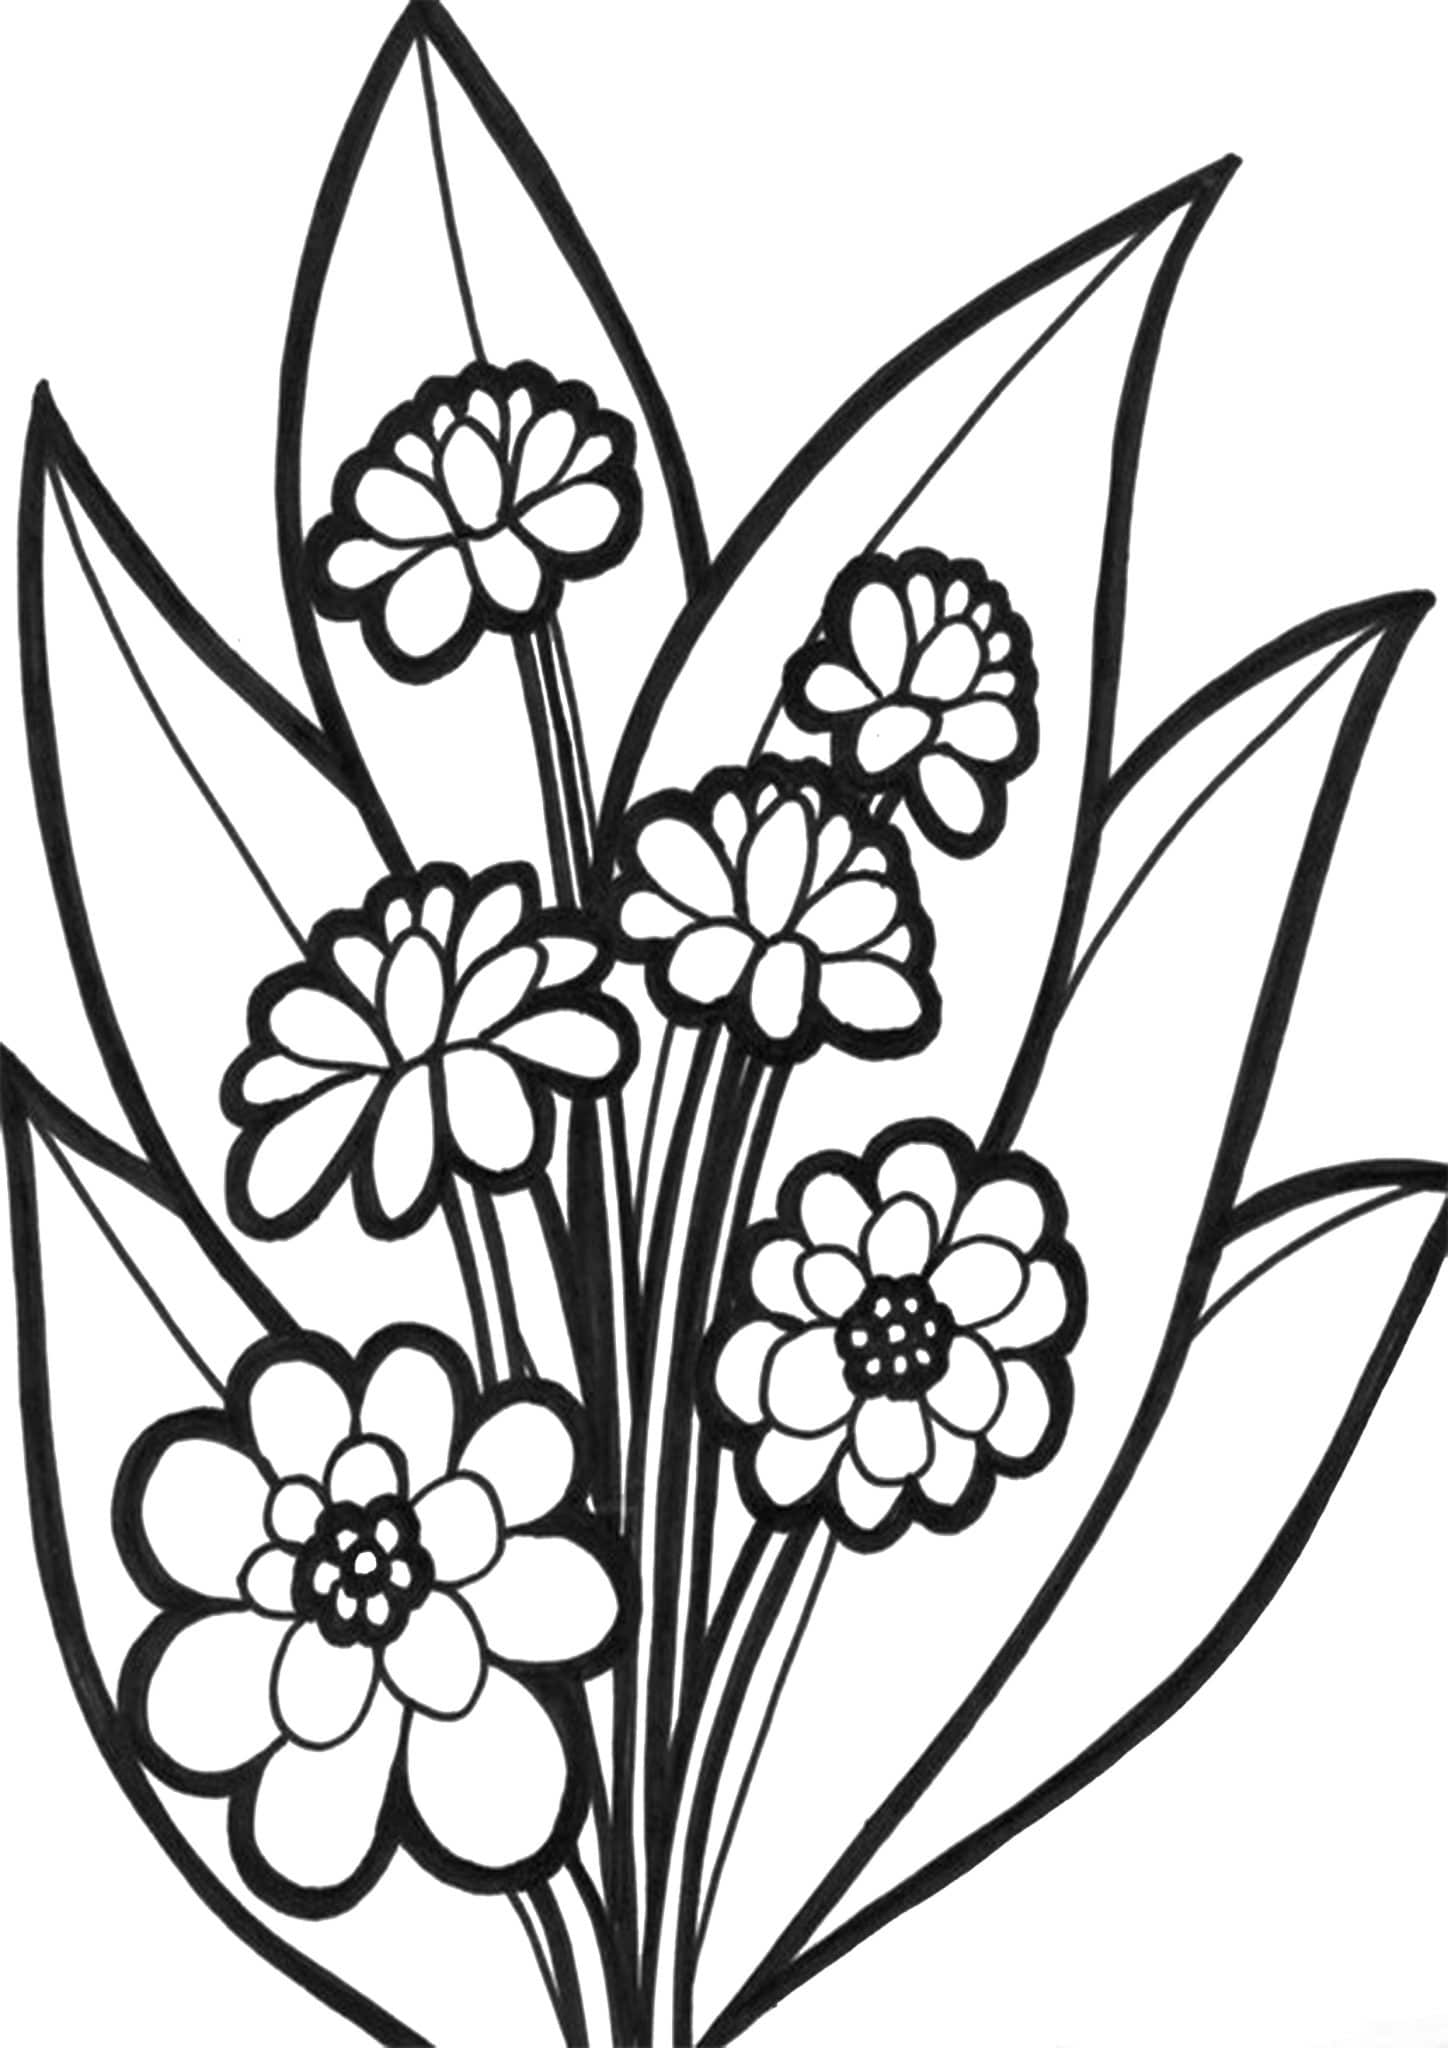 flower coloring page flowers printing pages creative children coloring flower page